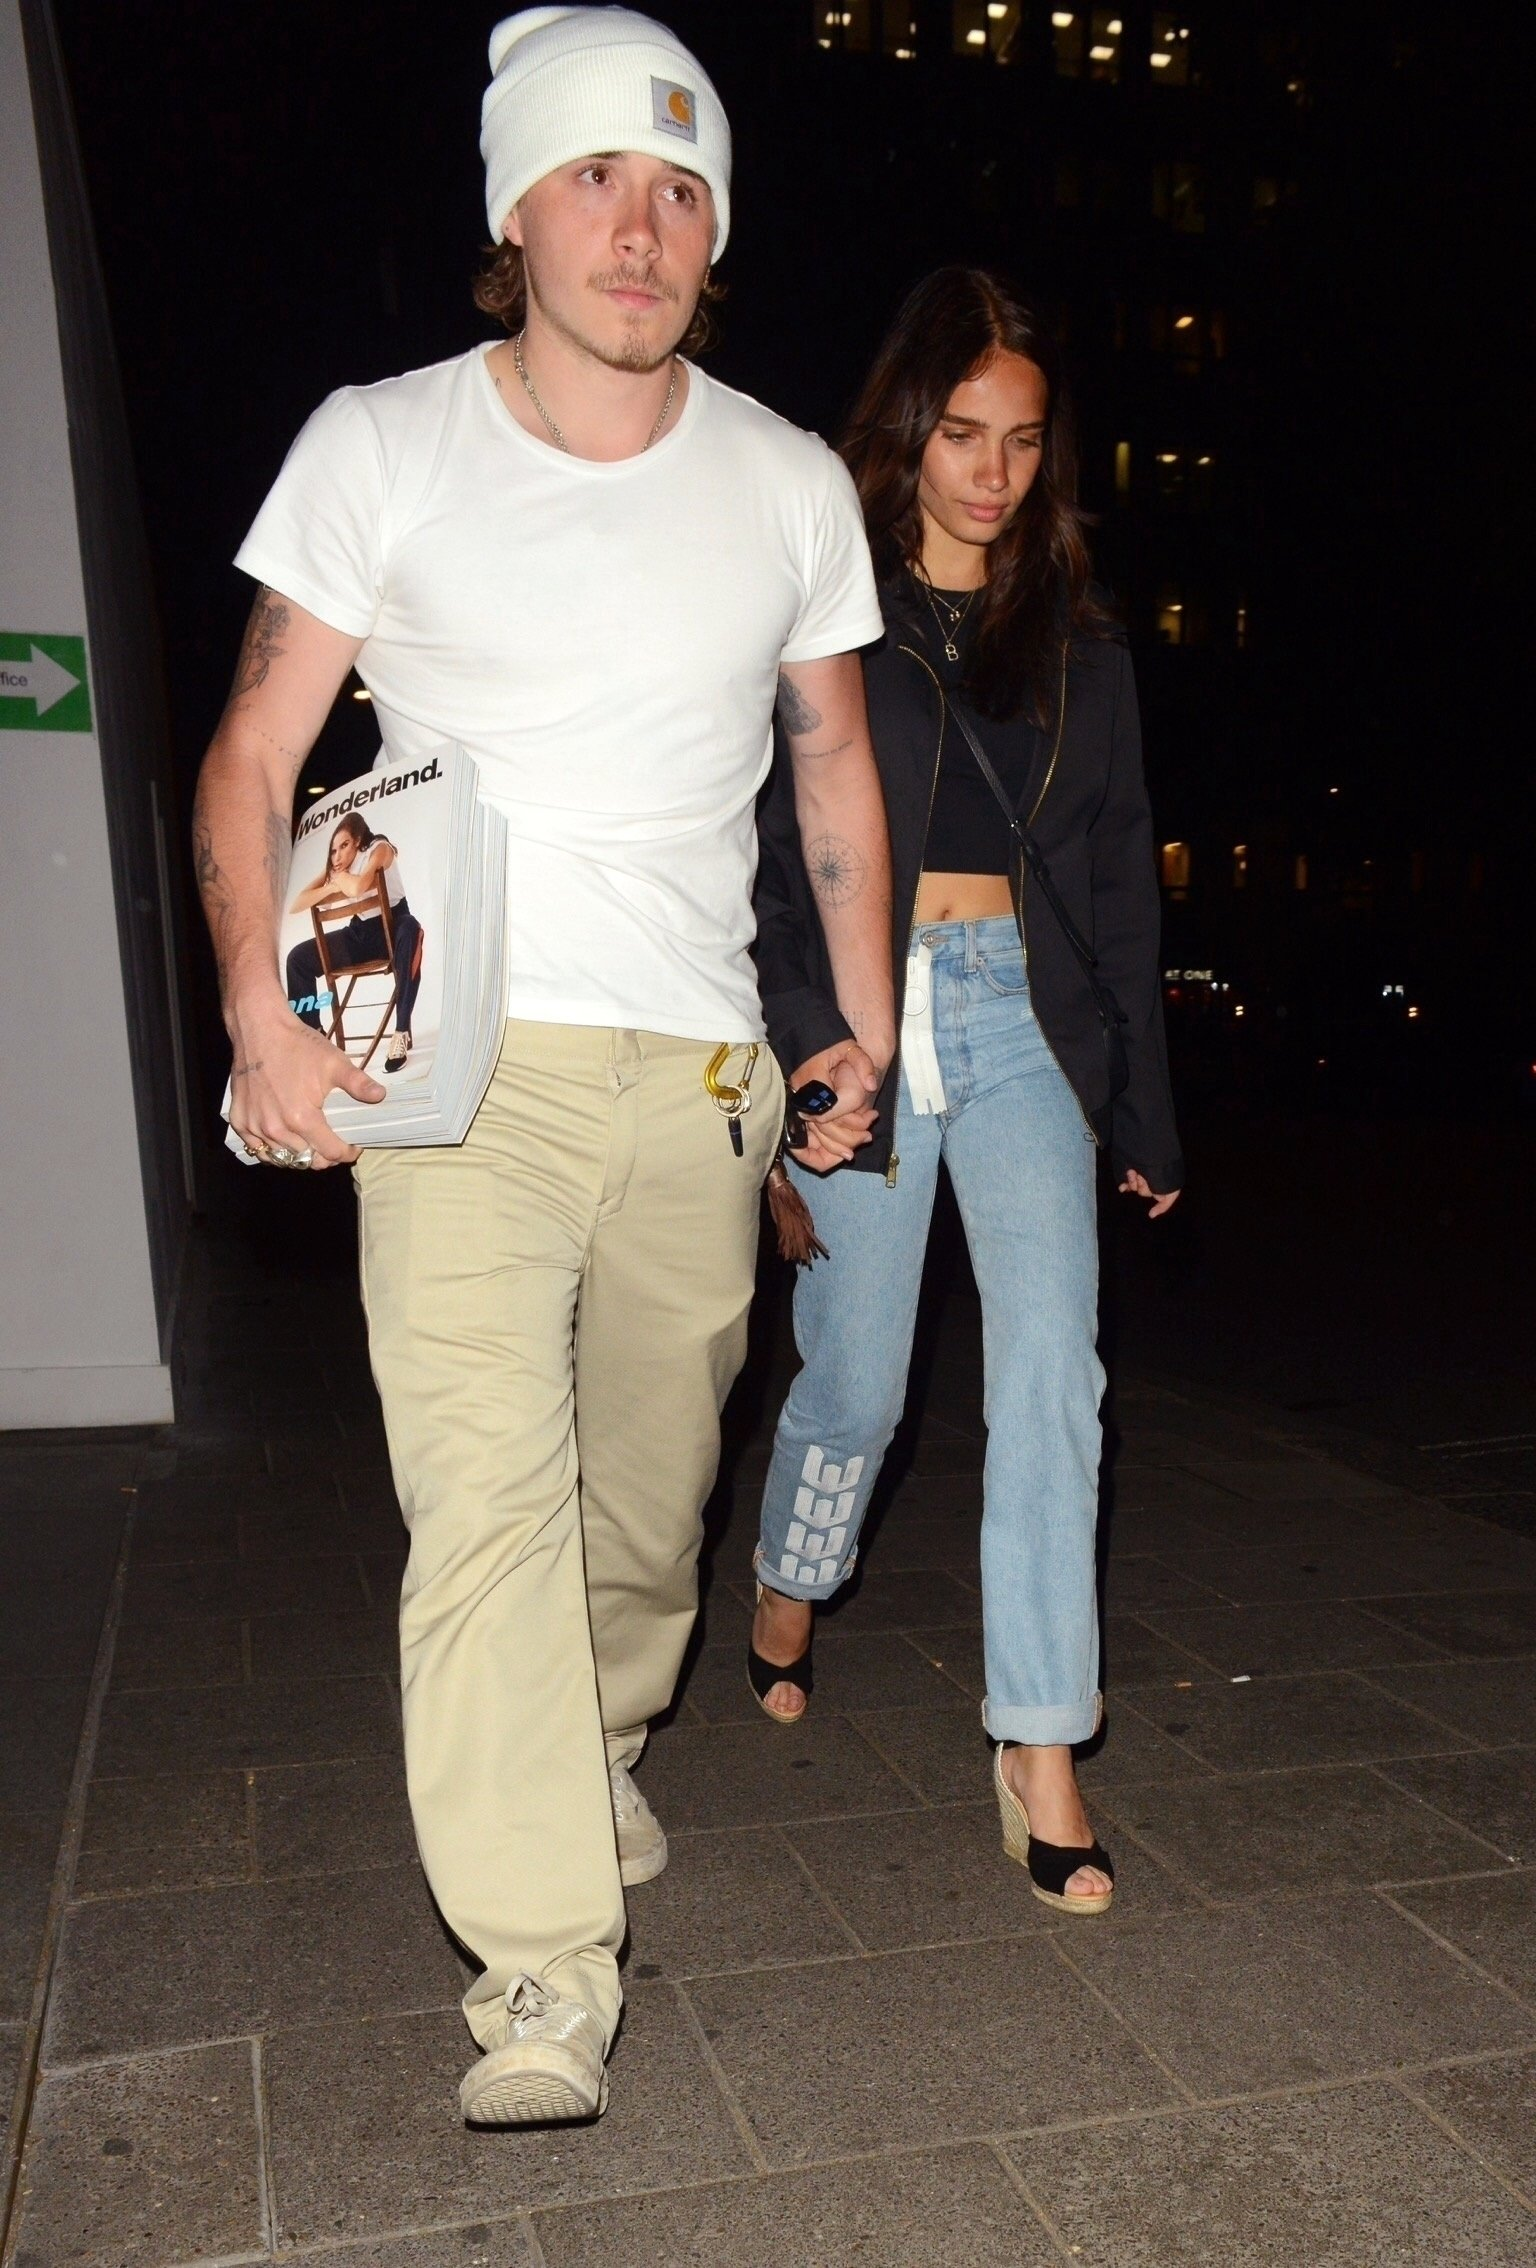 London, UNITED KINGDOM  - Brooklyn Beckham and Hana Cross at Sexy Fish restaurant for the launch of Wonderland Magazine's Summer 2019 issue  *UK Clients - Pictures Containing Children Please Pixelate Face Prior To Publication*, Image: 453378488, License: Rights-managed, Restrictions: , Model Release: no, Credit line: Profimedia, Backgrid UK